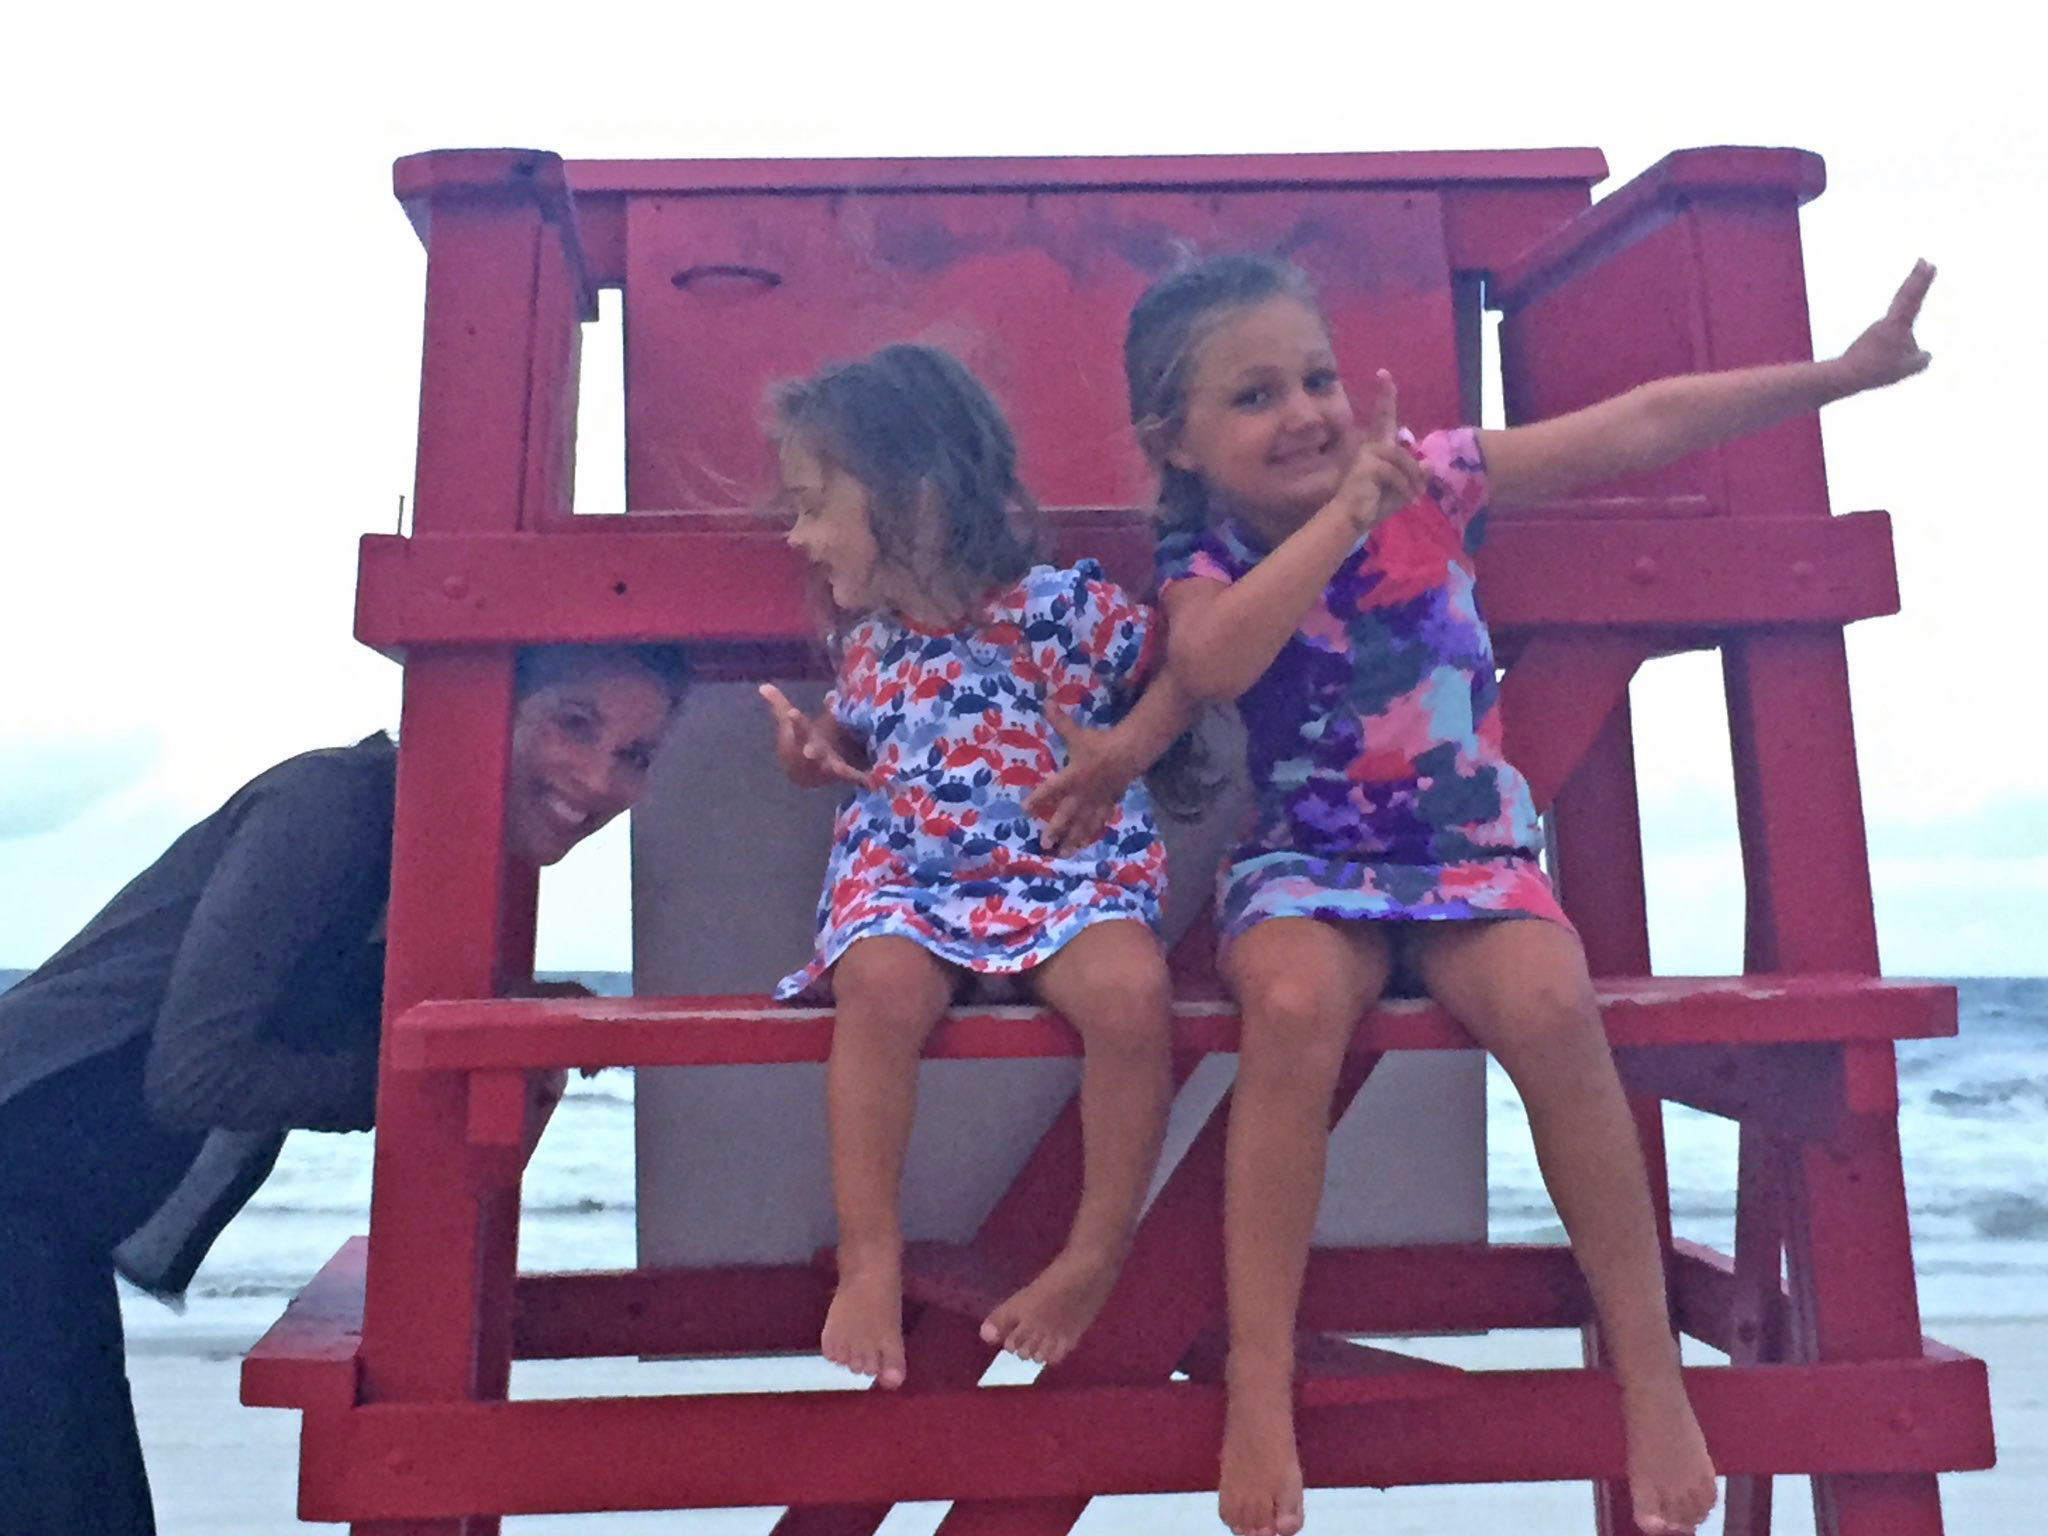 Spent a couple nights at the beach during my visit — ALL RAIN!! — but at least the skies parted for a nice evening walk on the beach, which obviously had to include climbing around on a lifeguard stand with a couple munchkins.